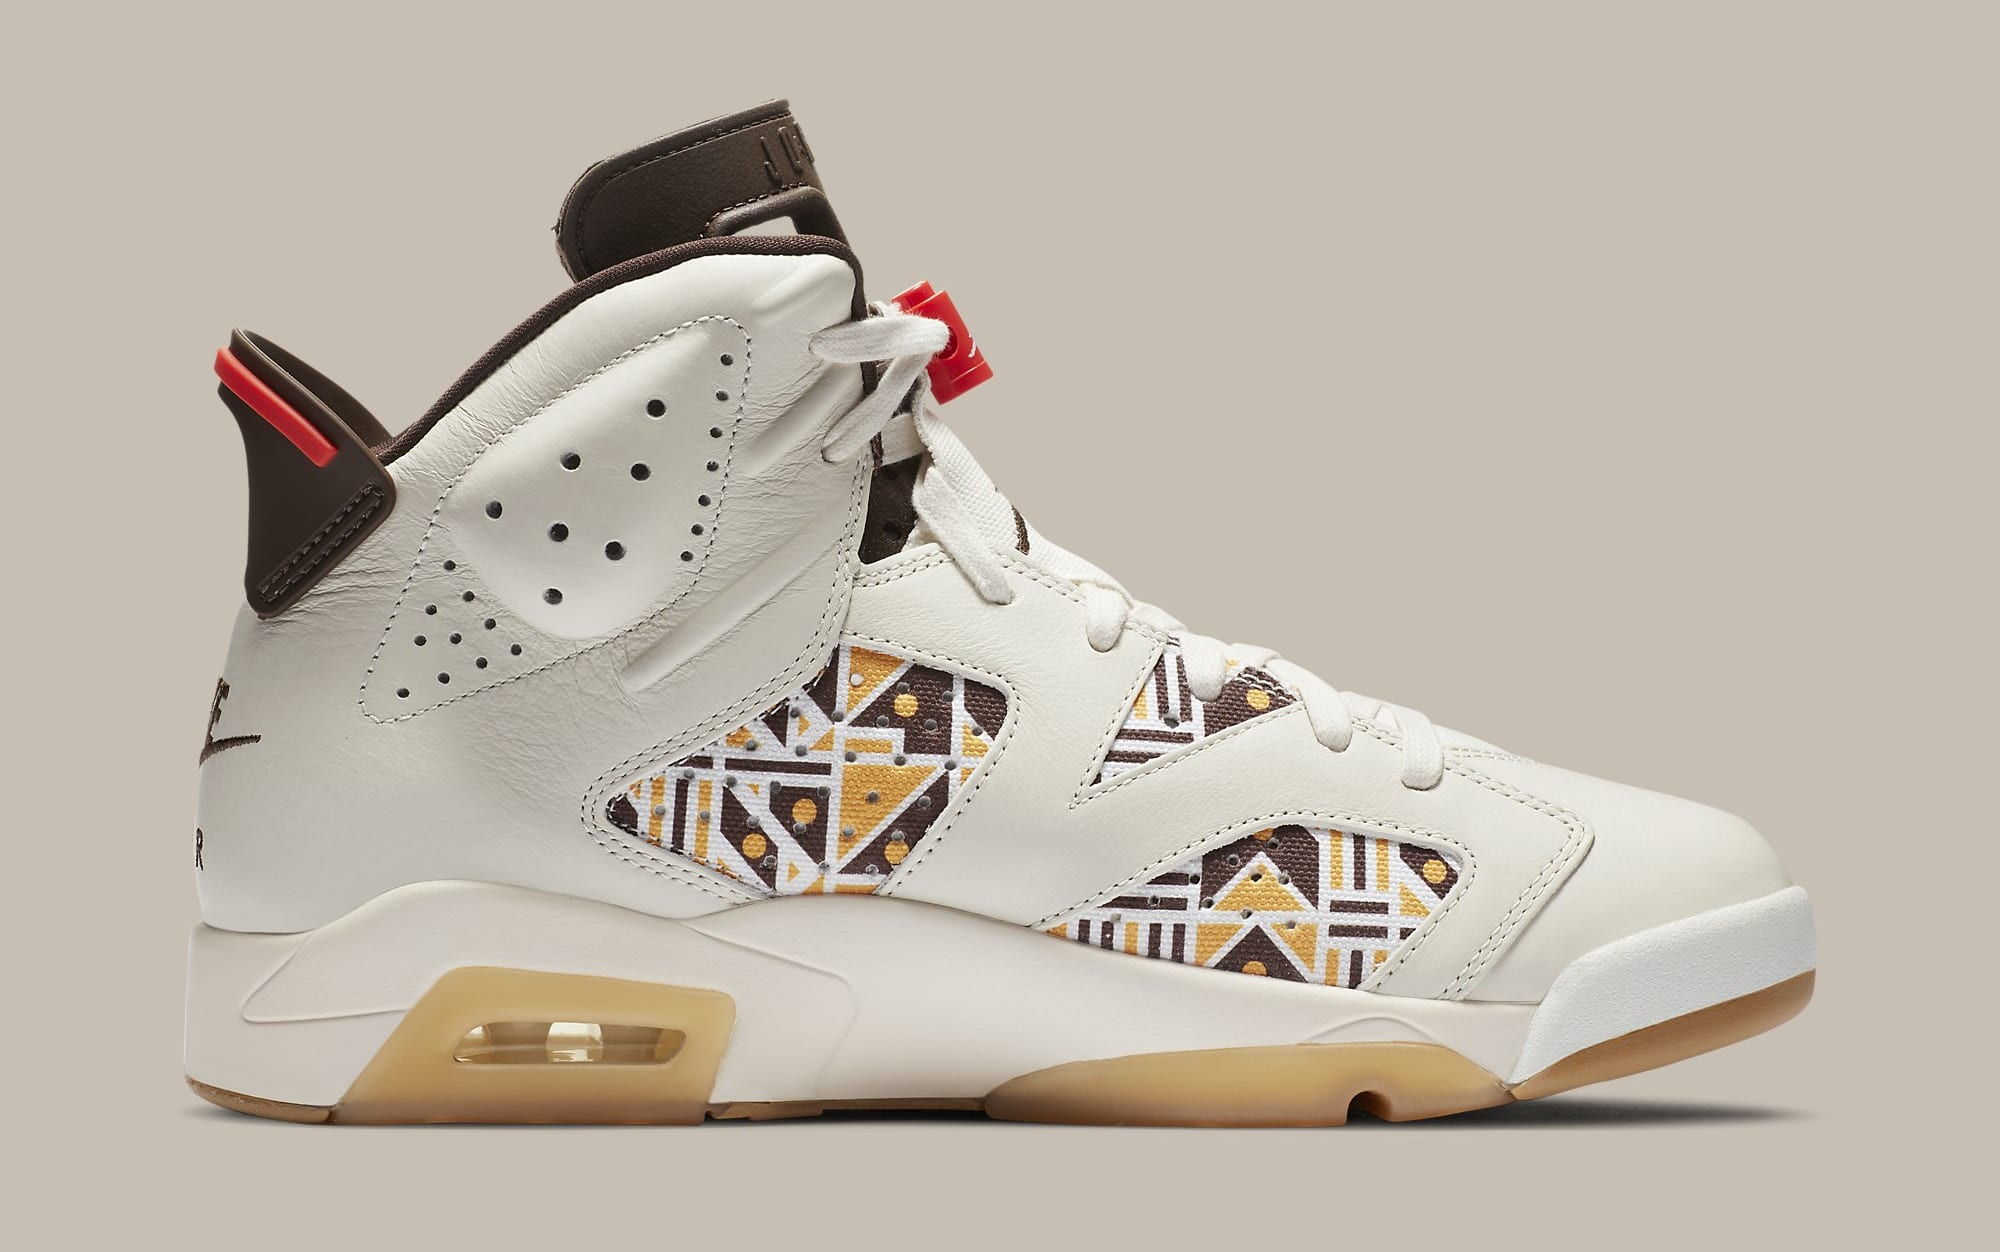 Air Jordan 6 Retro 'Quai 54' CZ4152-100 Medial